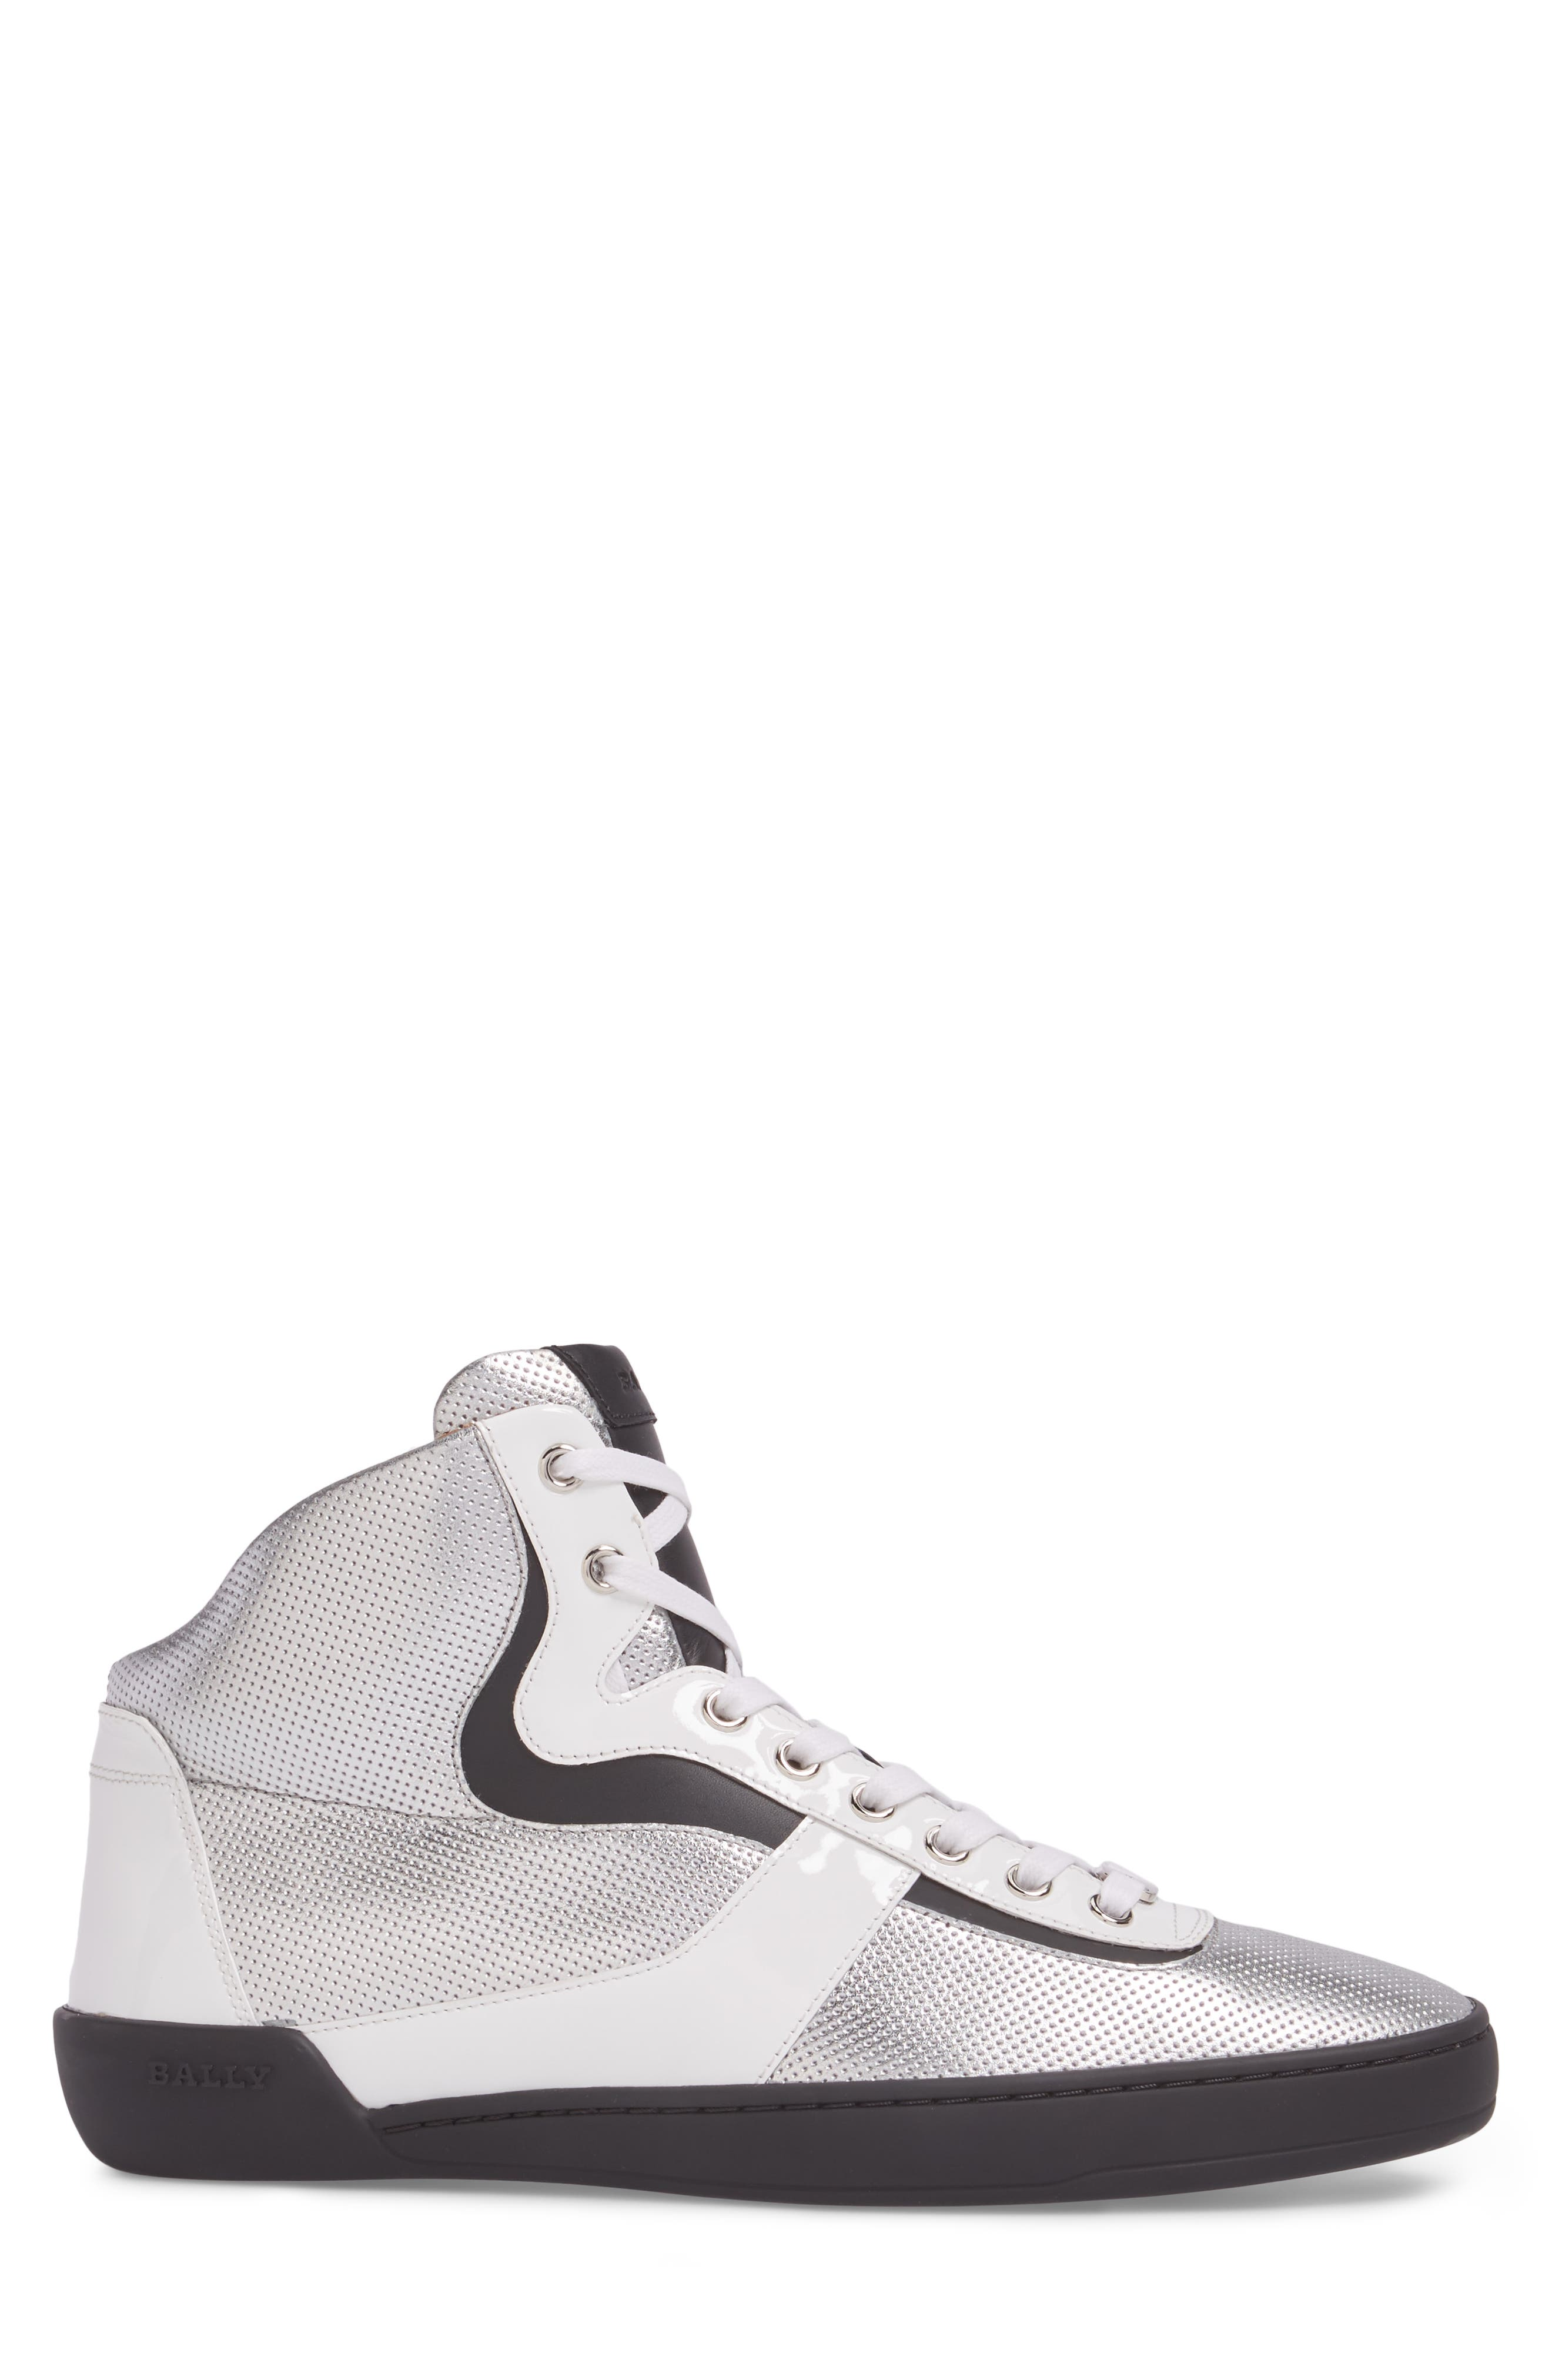 Eroy High Top Sneaker,                             Alternate thumbnail 3, color,                             Silver